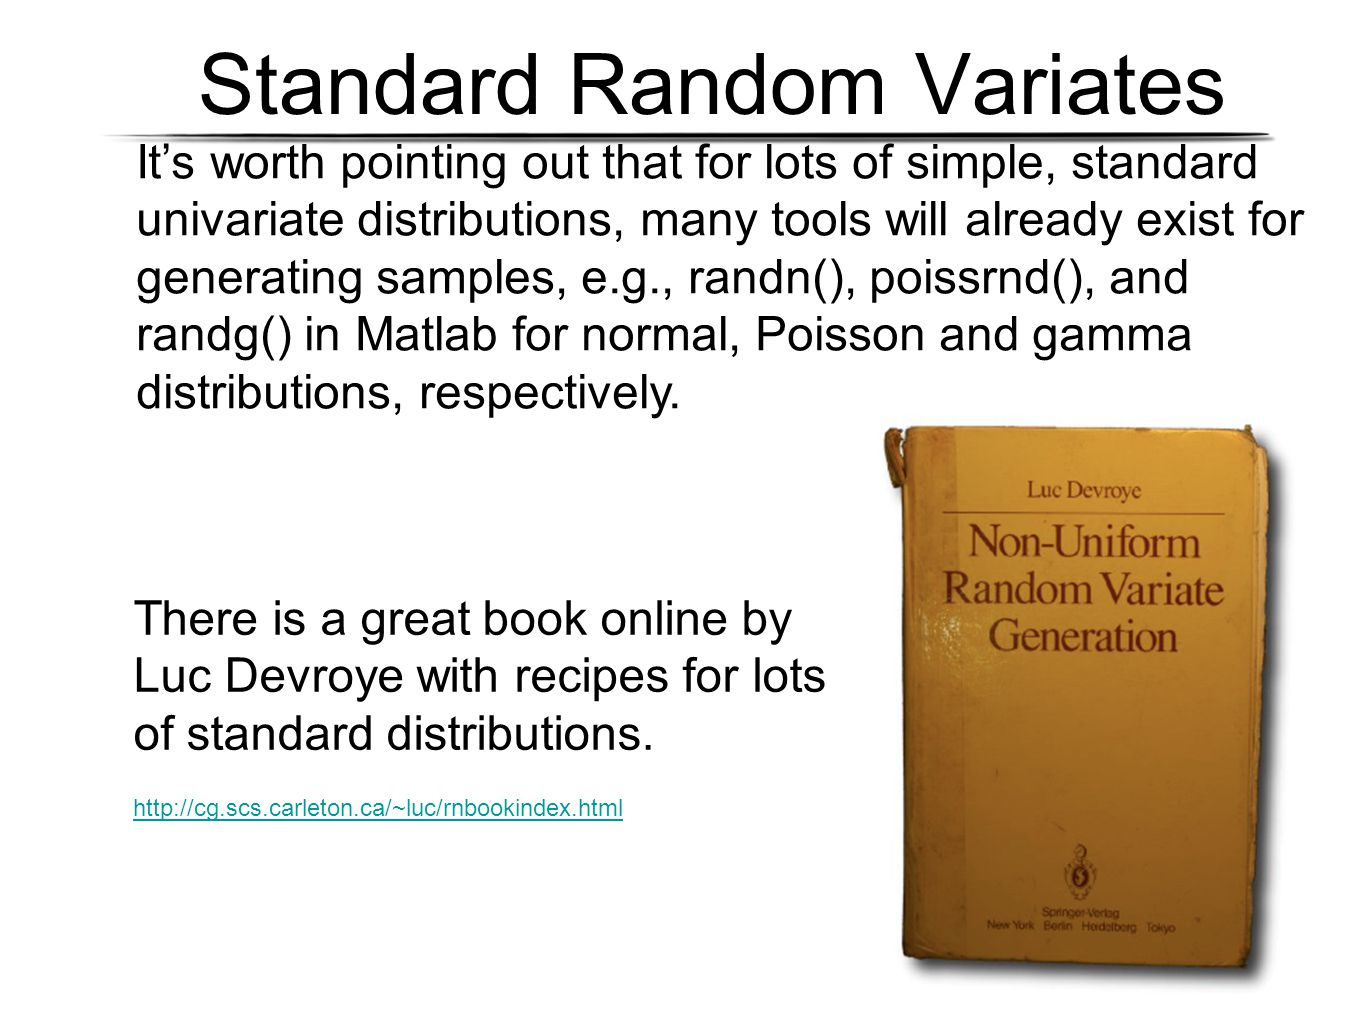 Standard Random Variates It's worth pointing out that for lots of simple, standard univariate distributions, many tools will already exist for generating samples, e.g., randn(), poissrnd(), and randg() in Matlab for normal, Poisson and gamma distributions, respectively.